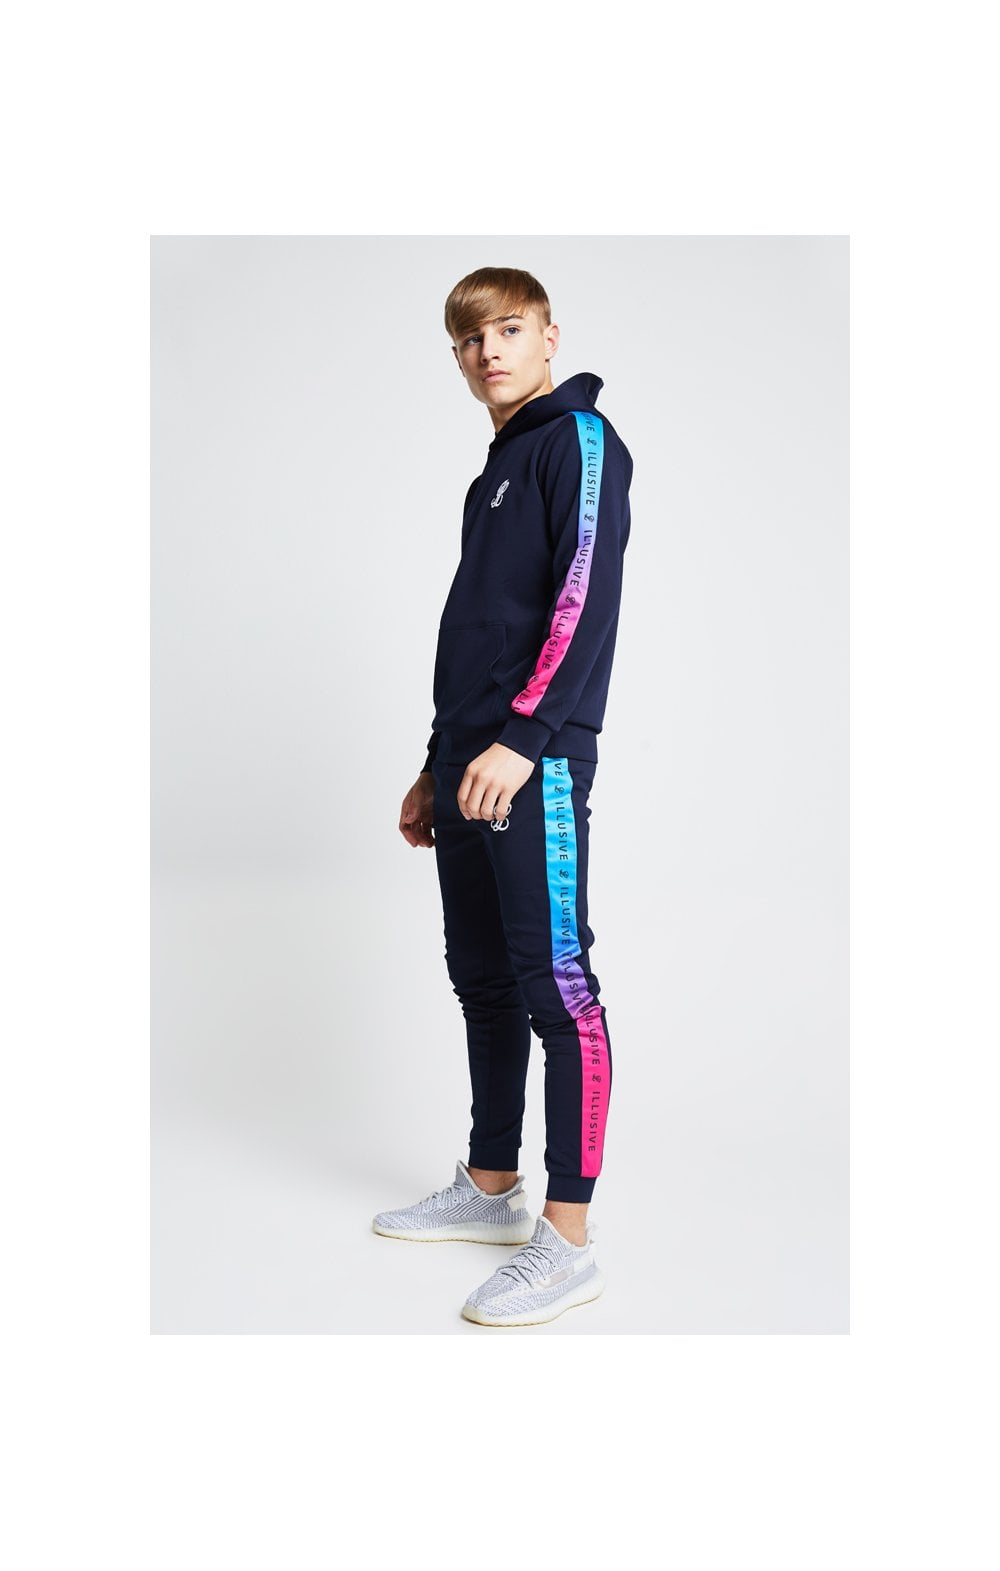 Illusive London Fade Panel Cuffed Joggers - Navy & Pink (2)